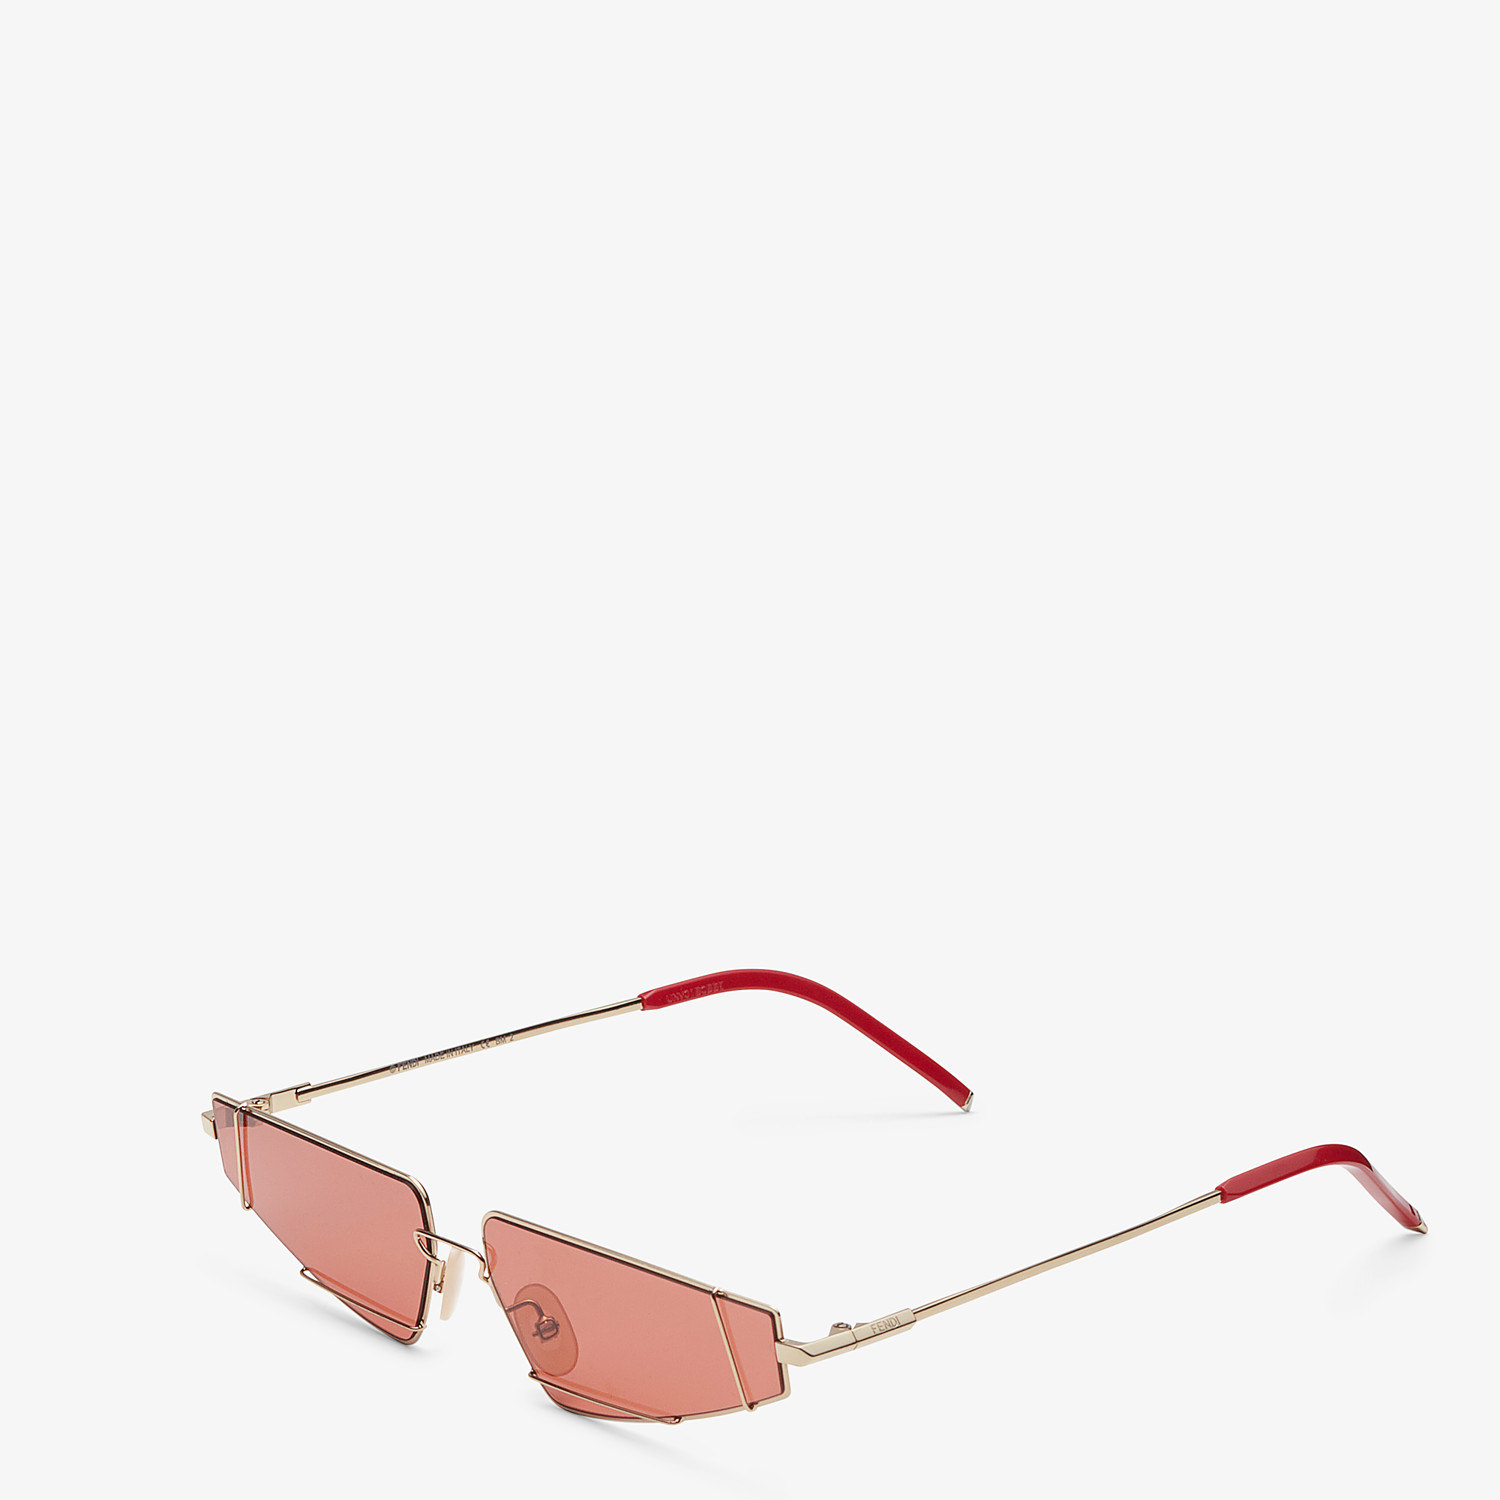 FENDI FENDIFIEND - Gold and red sunglasses - view 2 detail